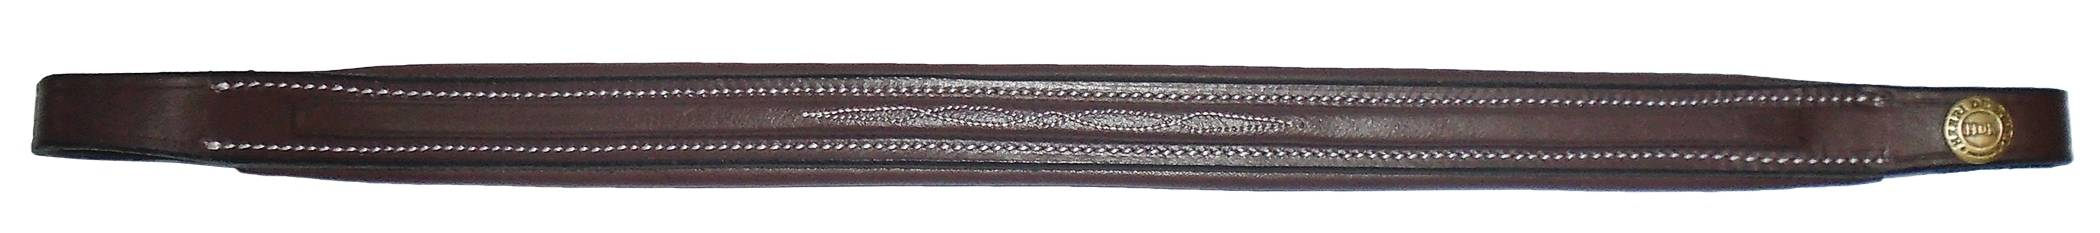 Henri de Rivel Replacement Browband